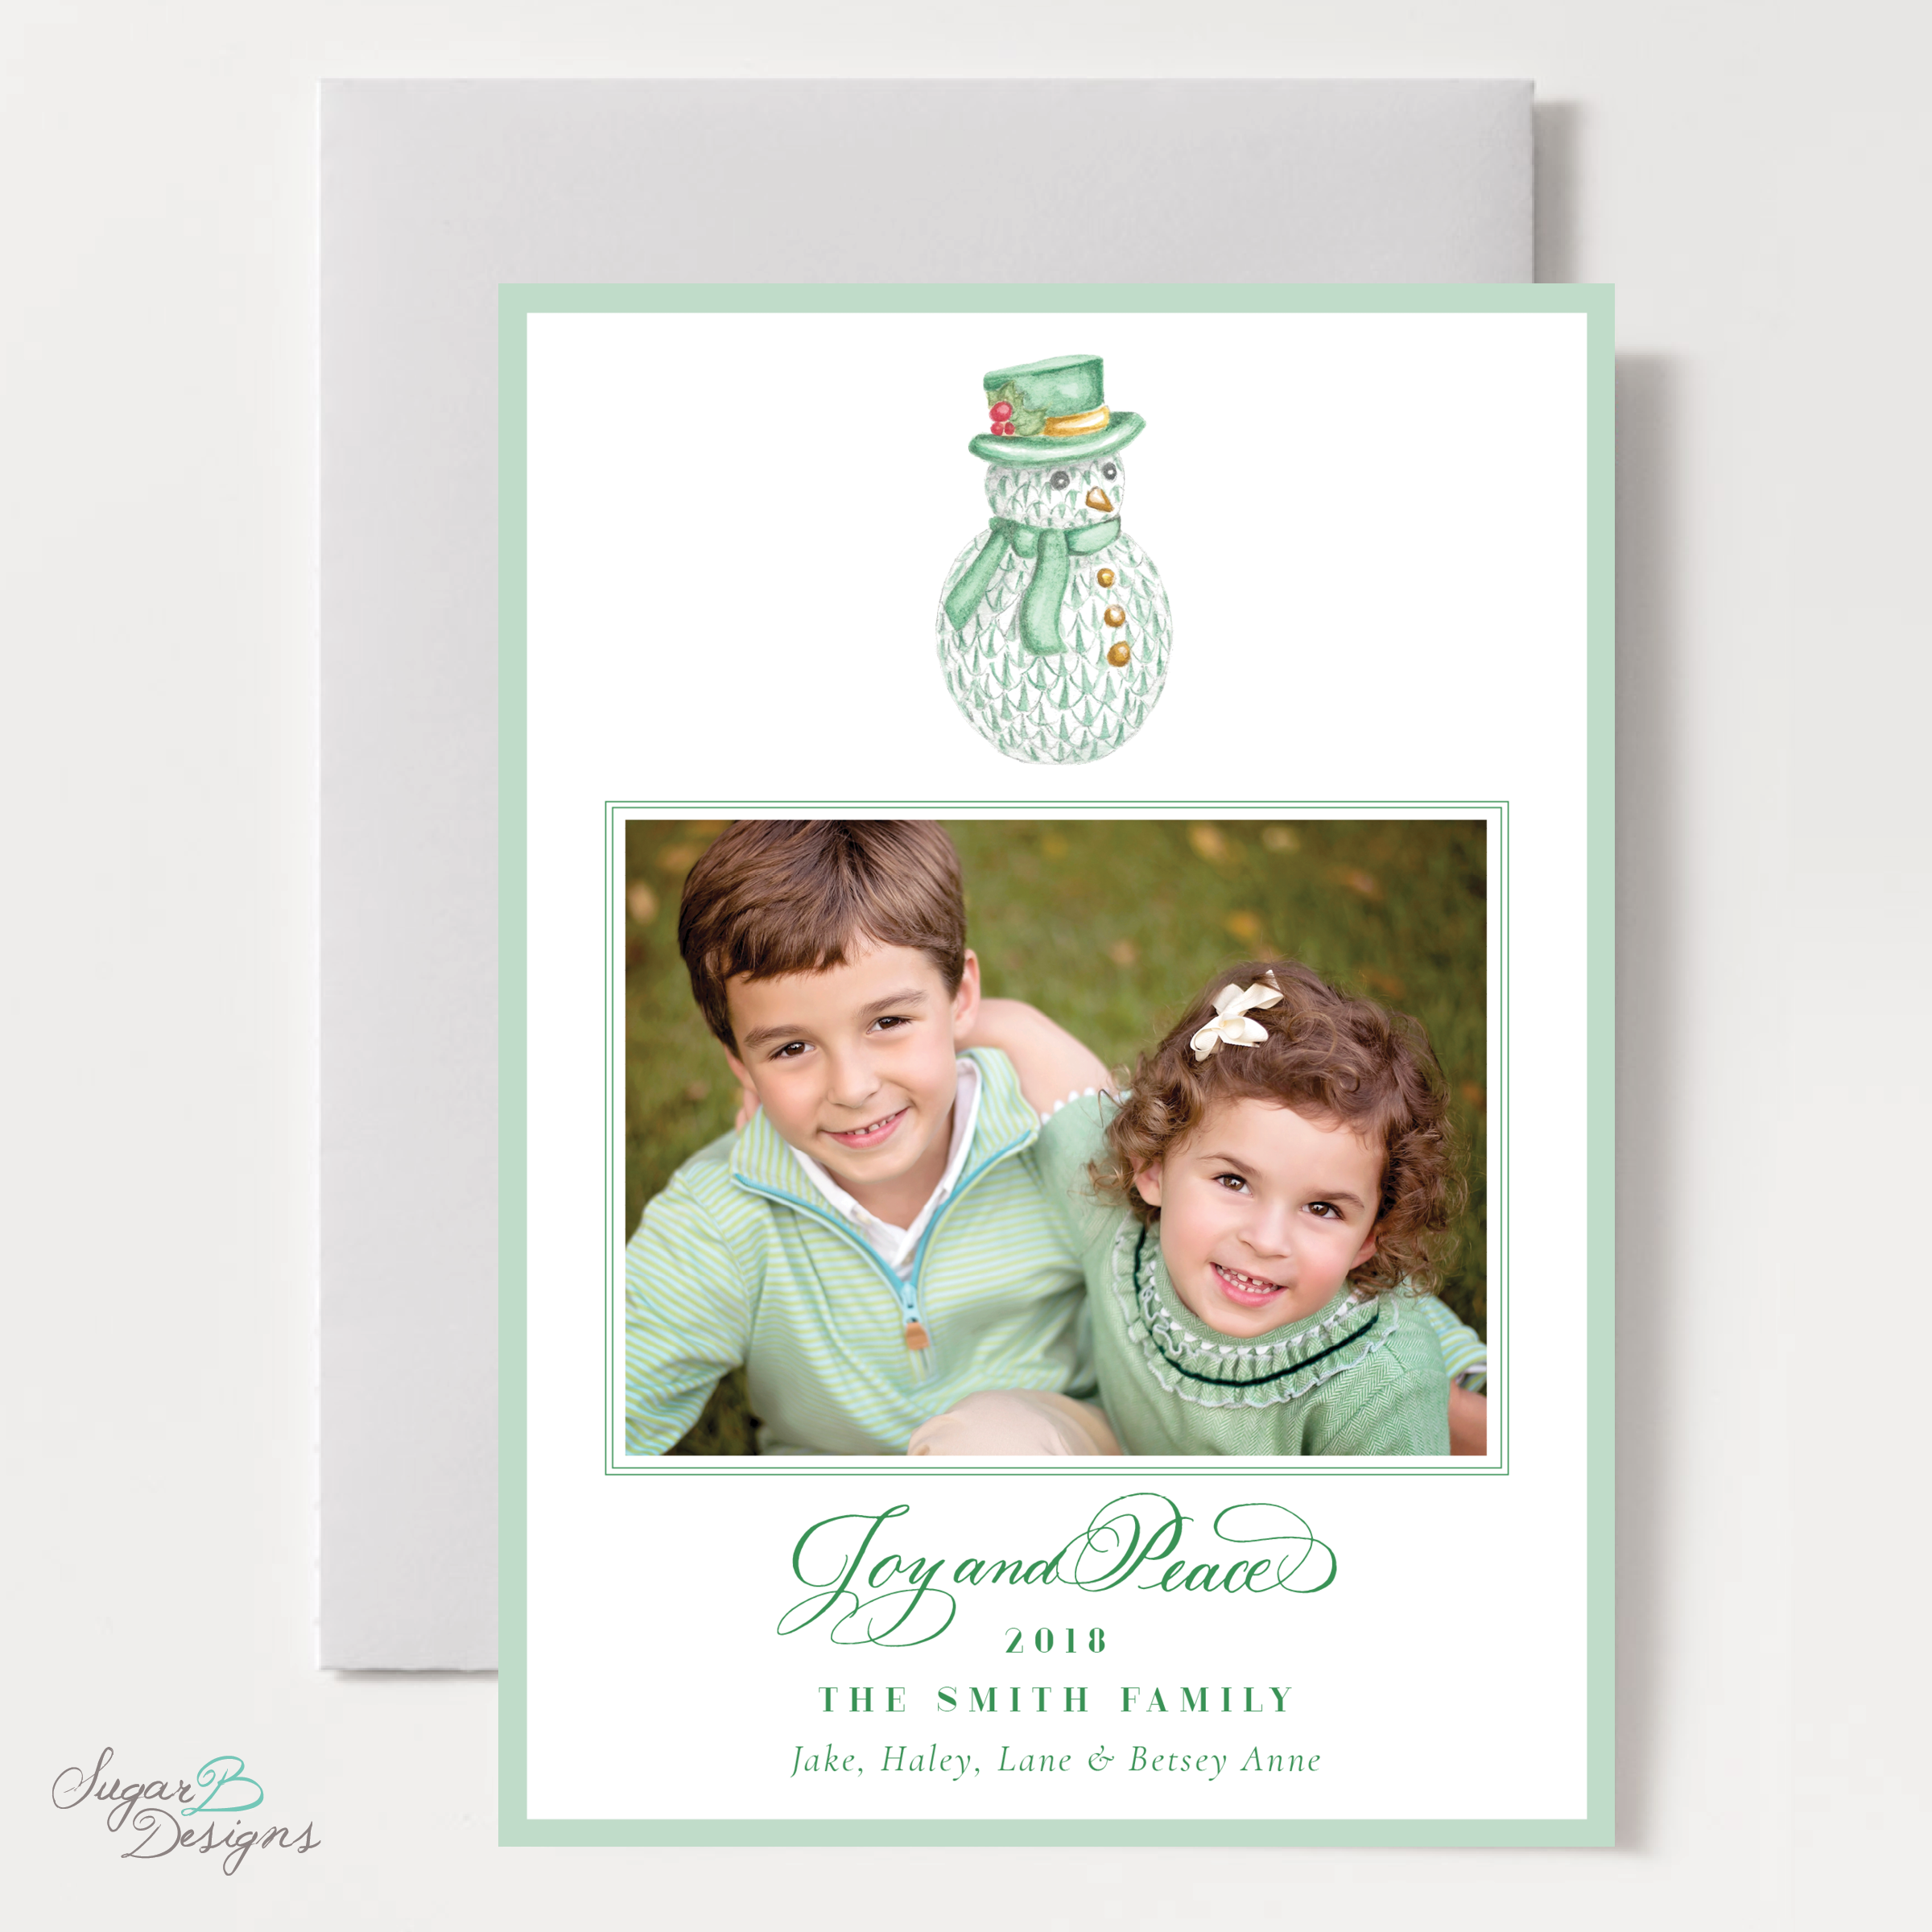 Herend Inspired Snowman Christmas Card by Sugar B Designs.png